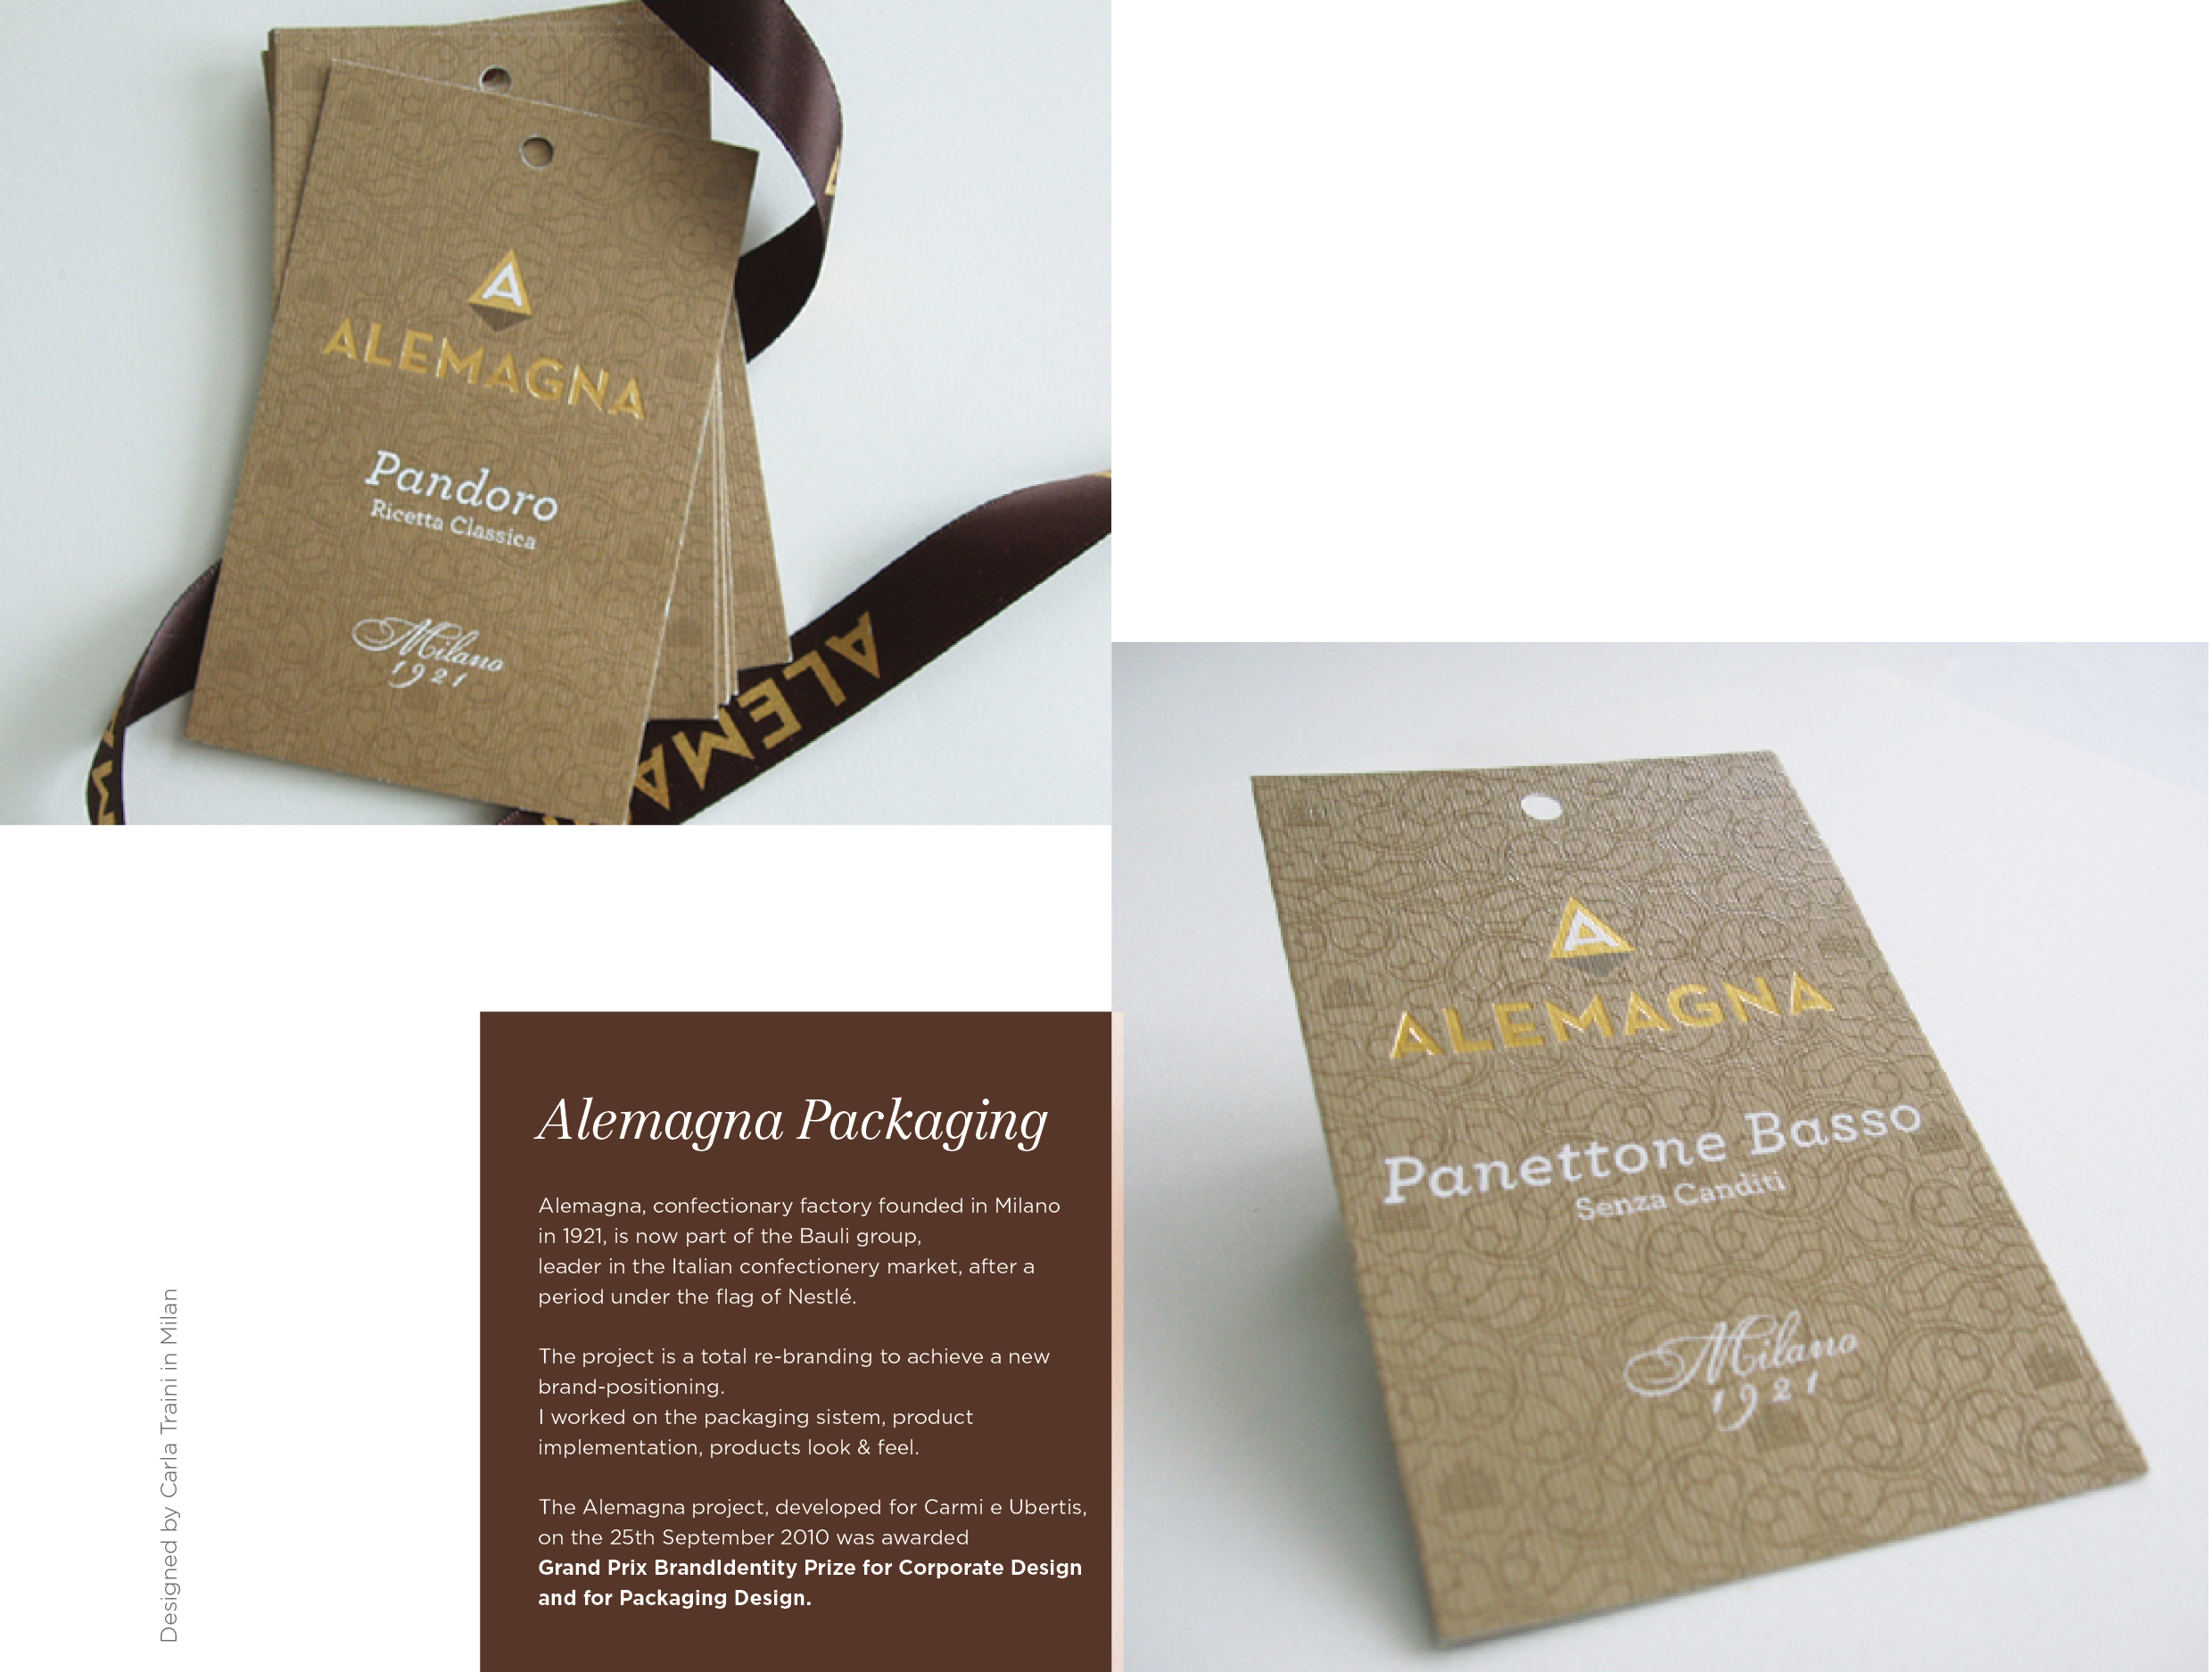 Alemagna_ Packaging